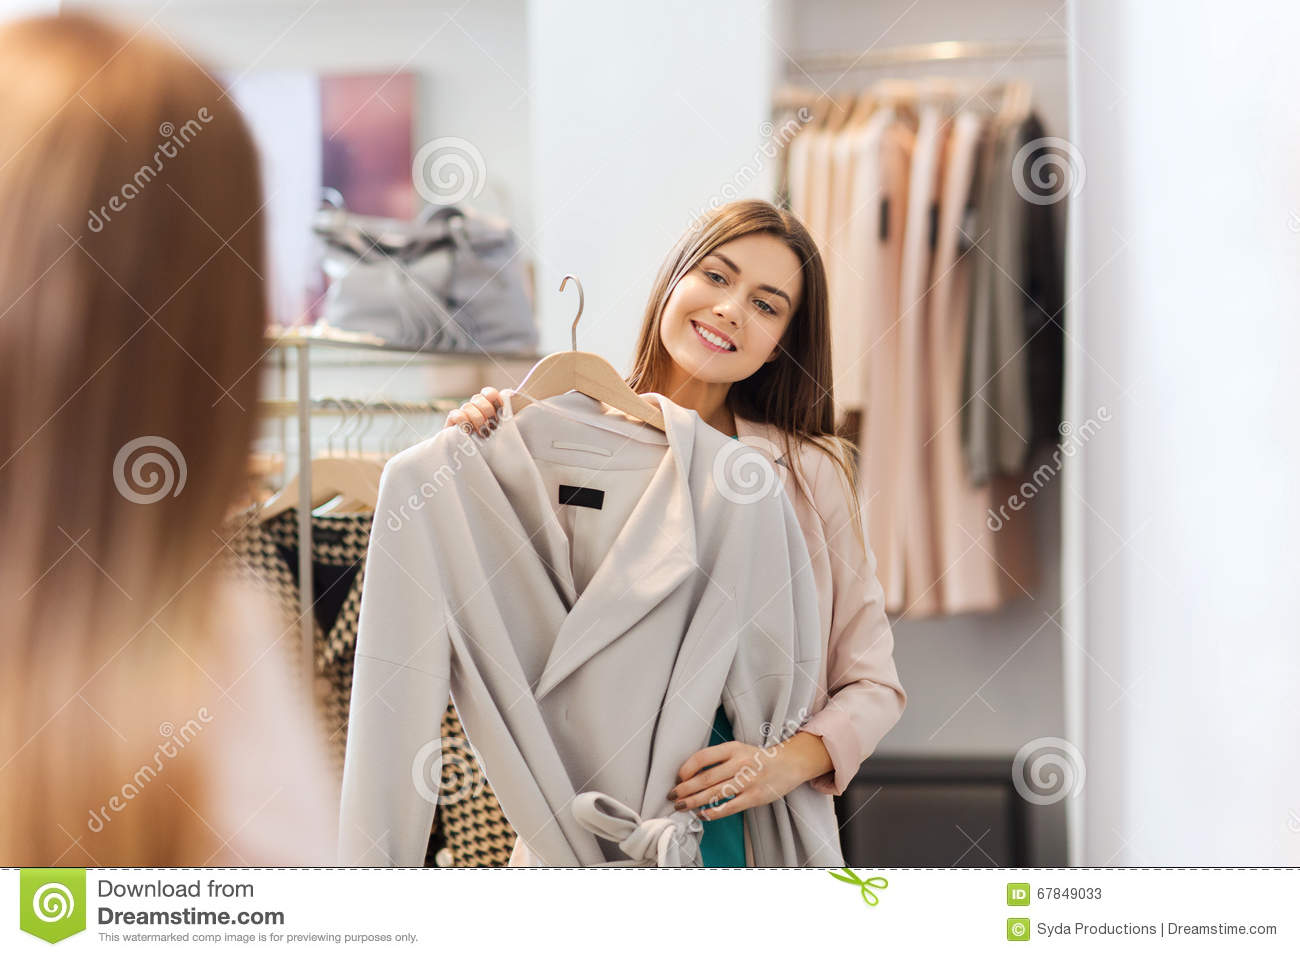 Happy woman trying coat at clothing store mirror